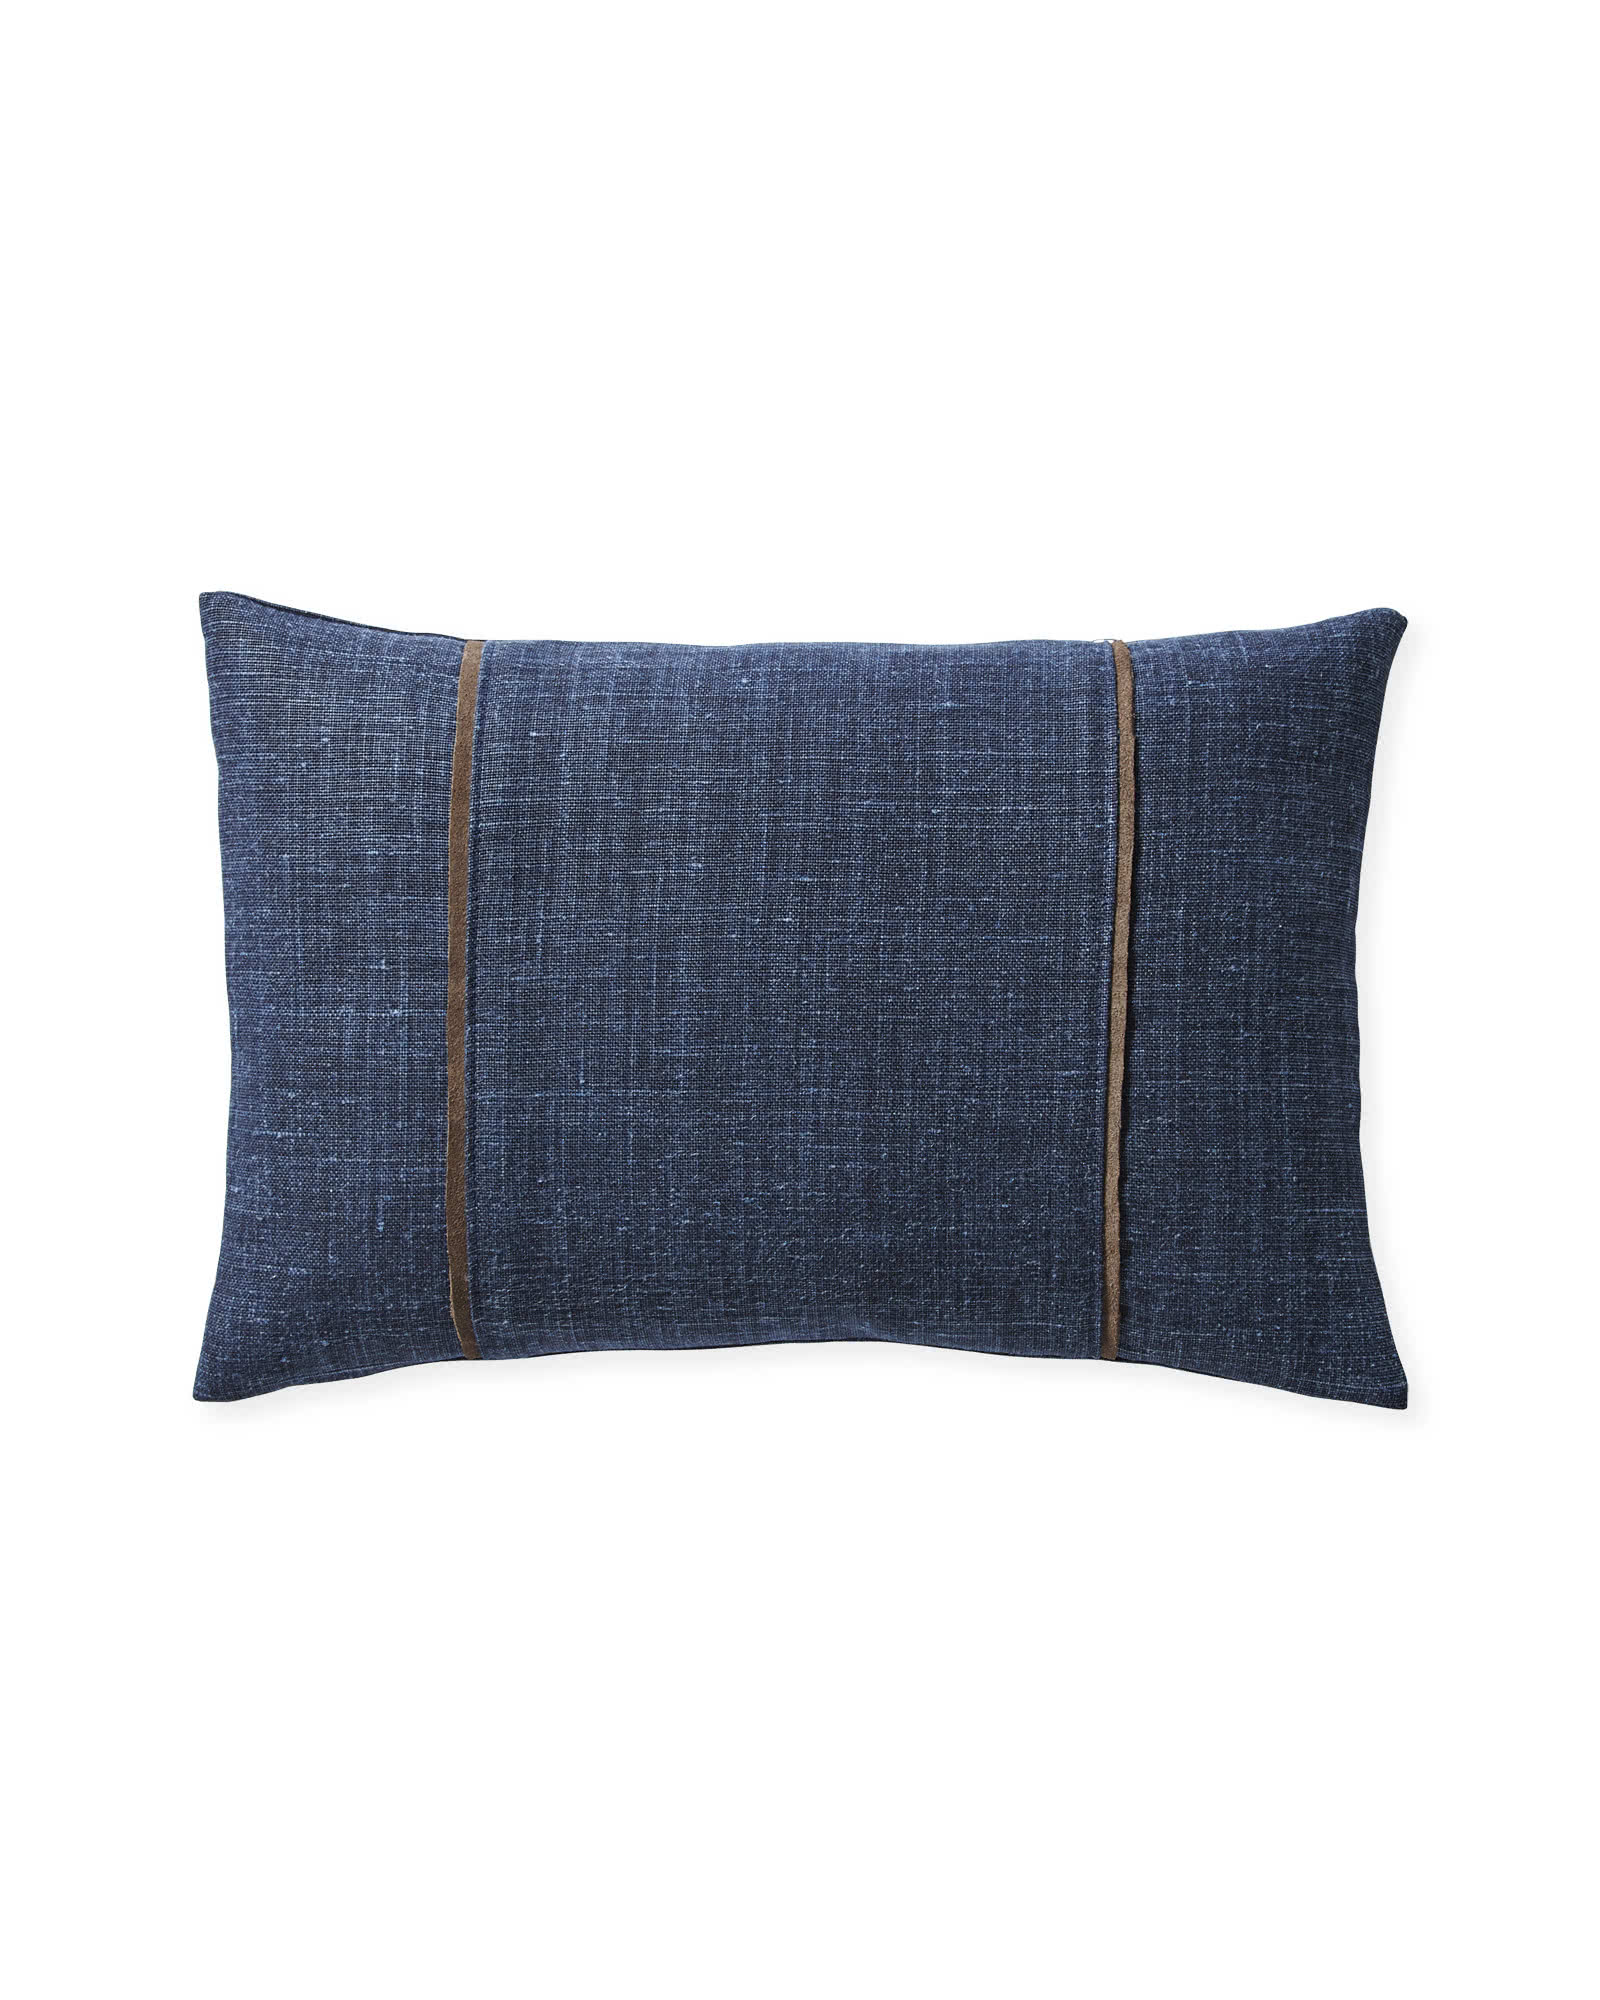 Kentfield Pillow Cover, Navy